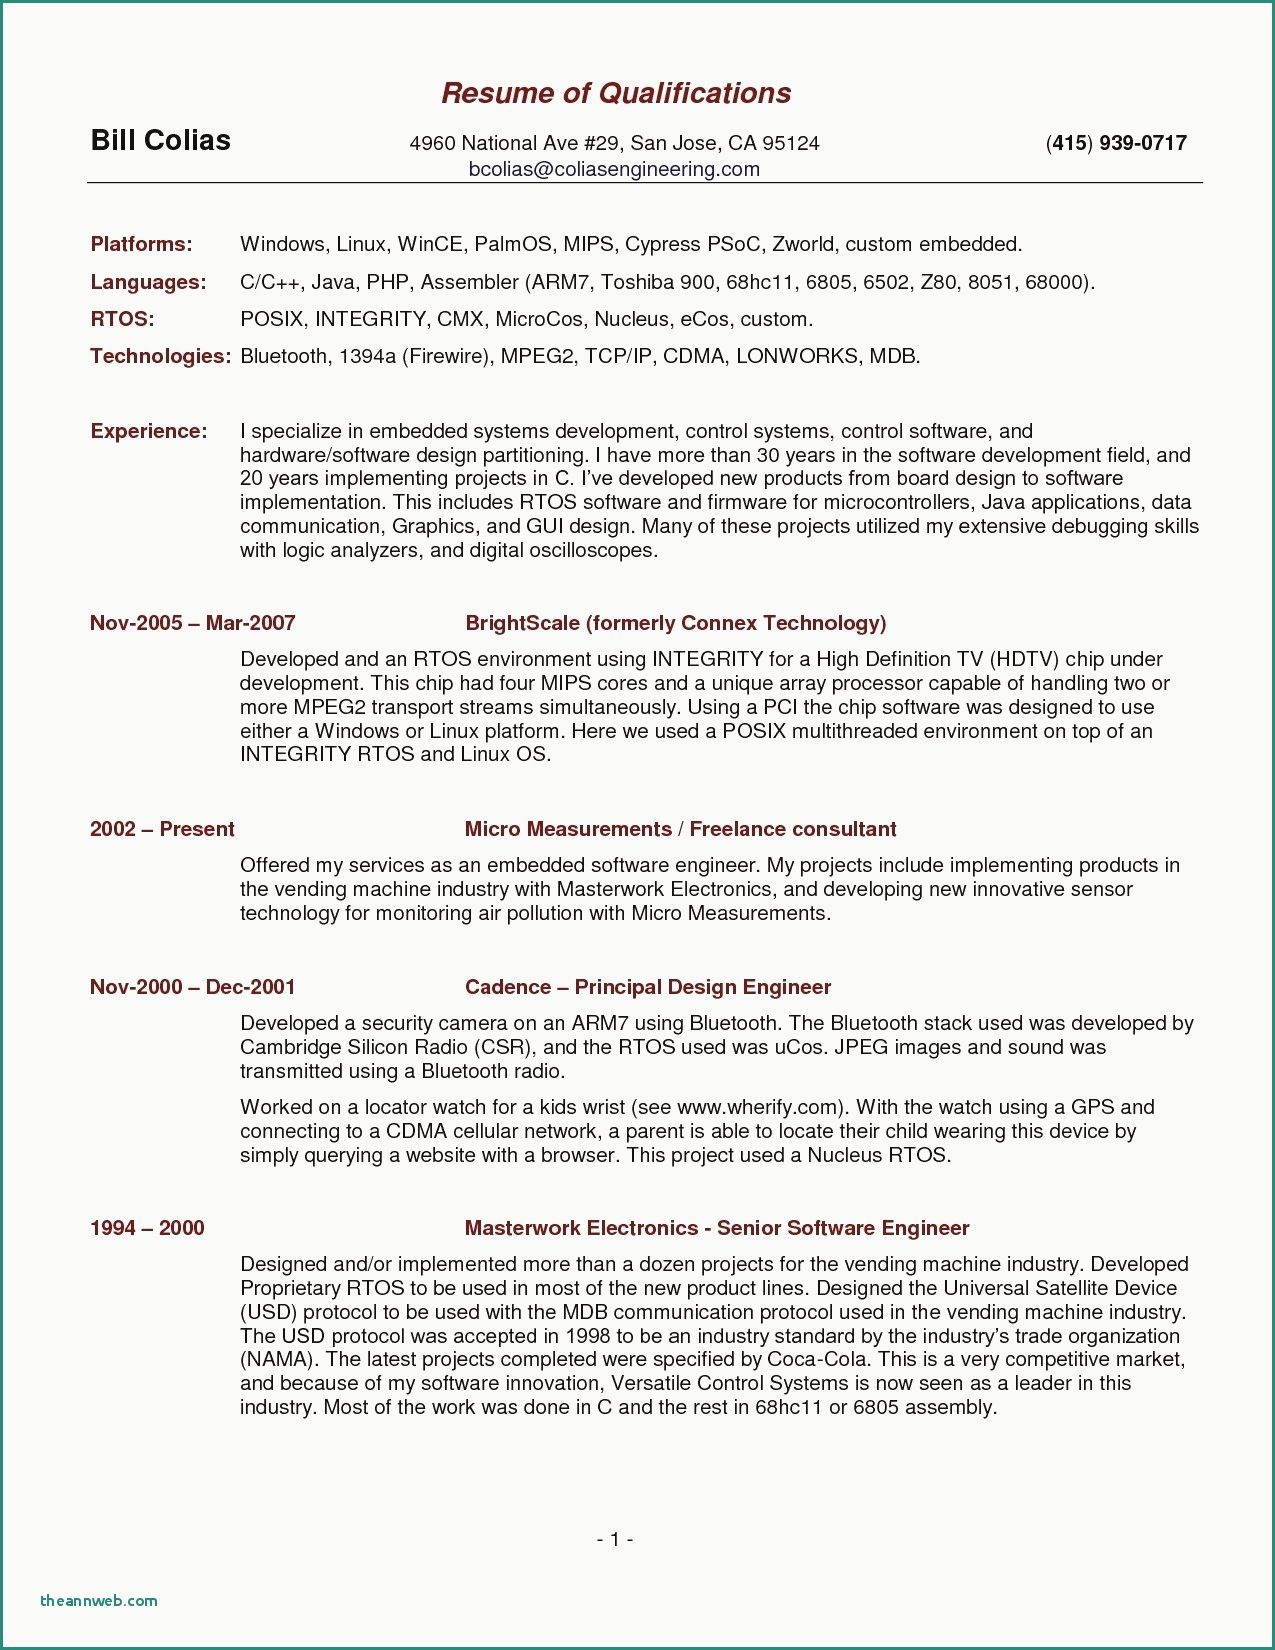 Pin By Moci Bow On Resume Templates Pinterest Resume Sample